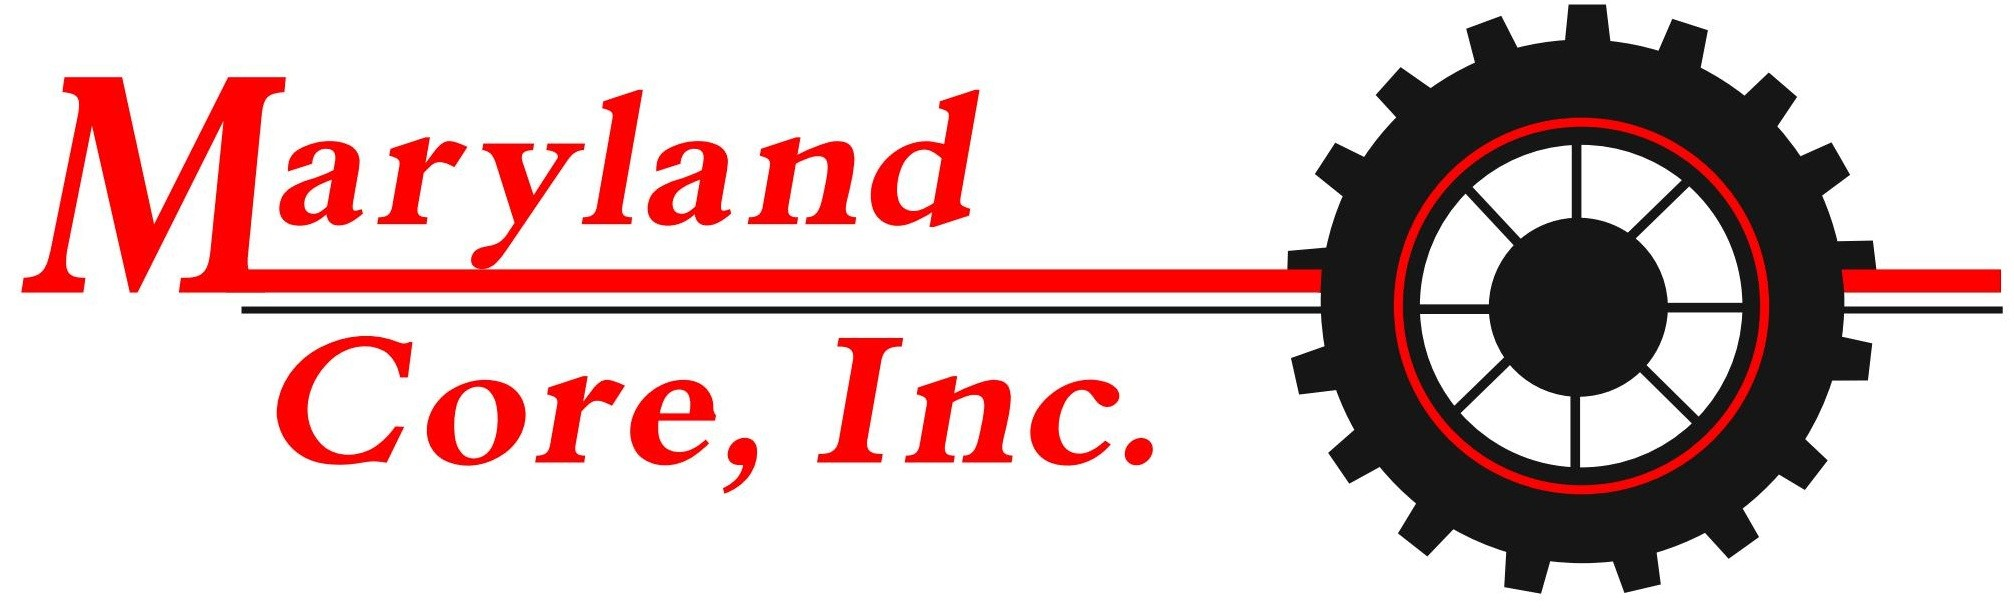 Maryland Core, Inc.